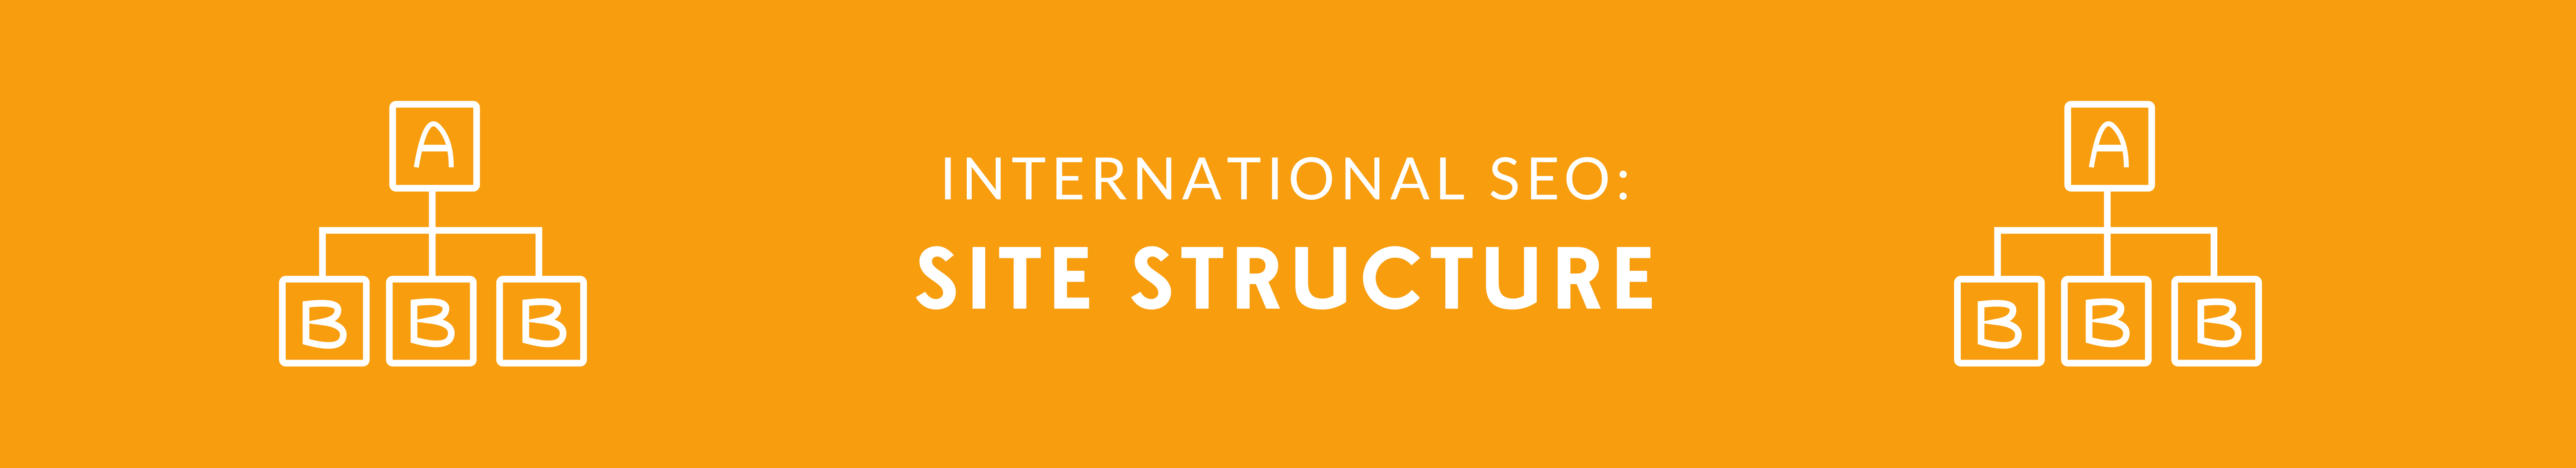 International SEO: Site Structure